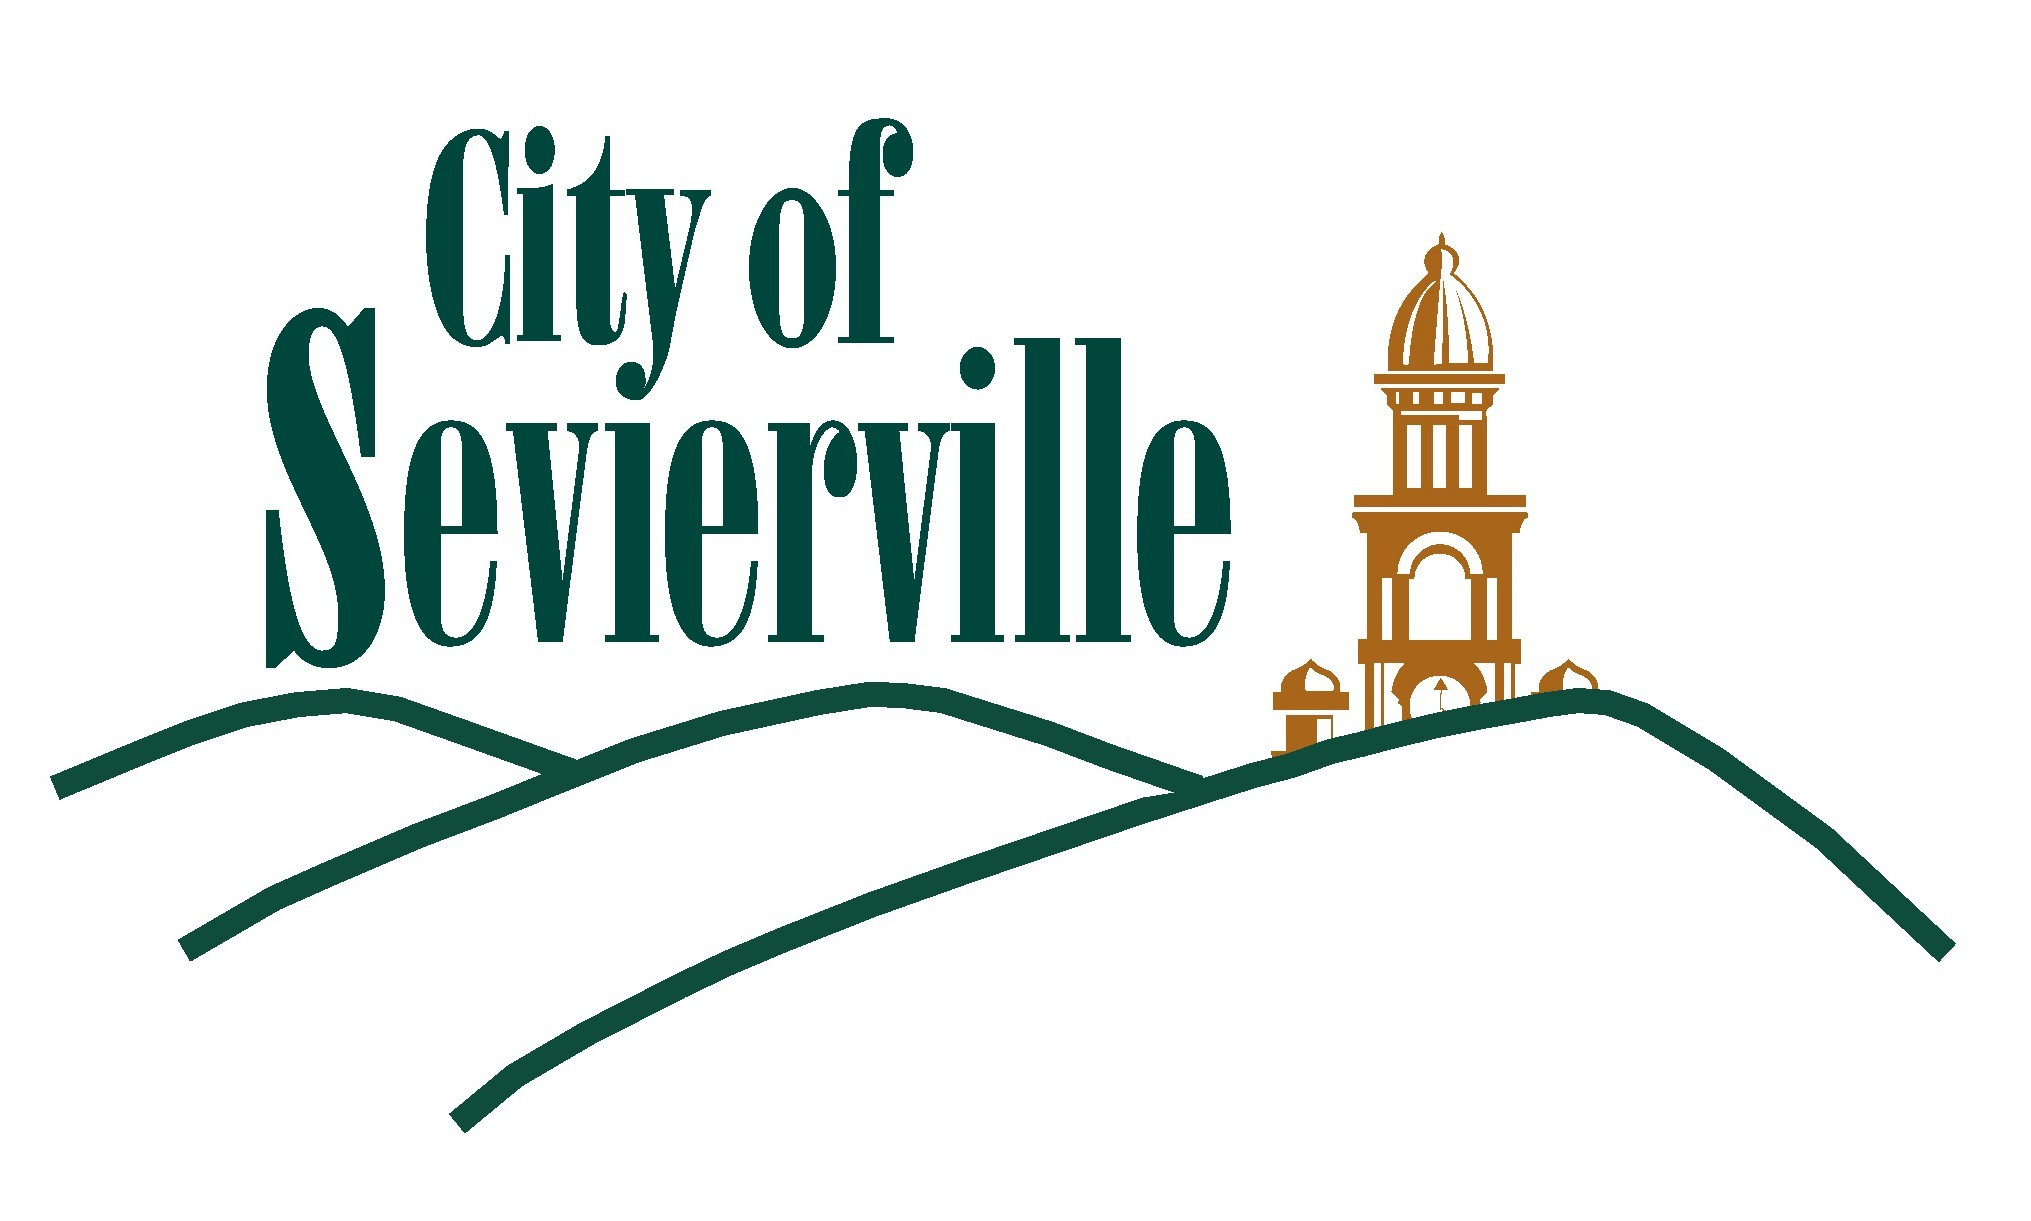 City of sevierville logo